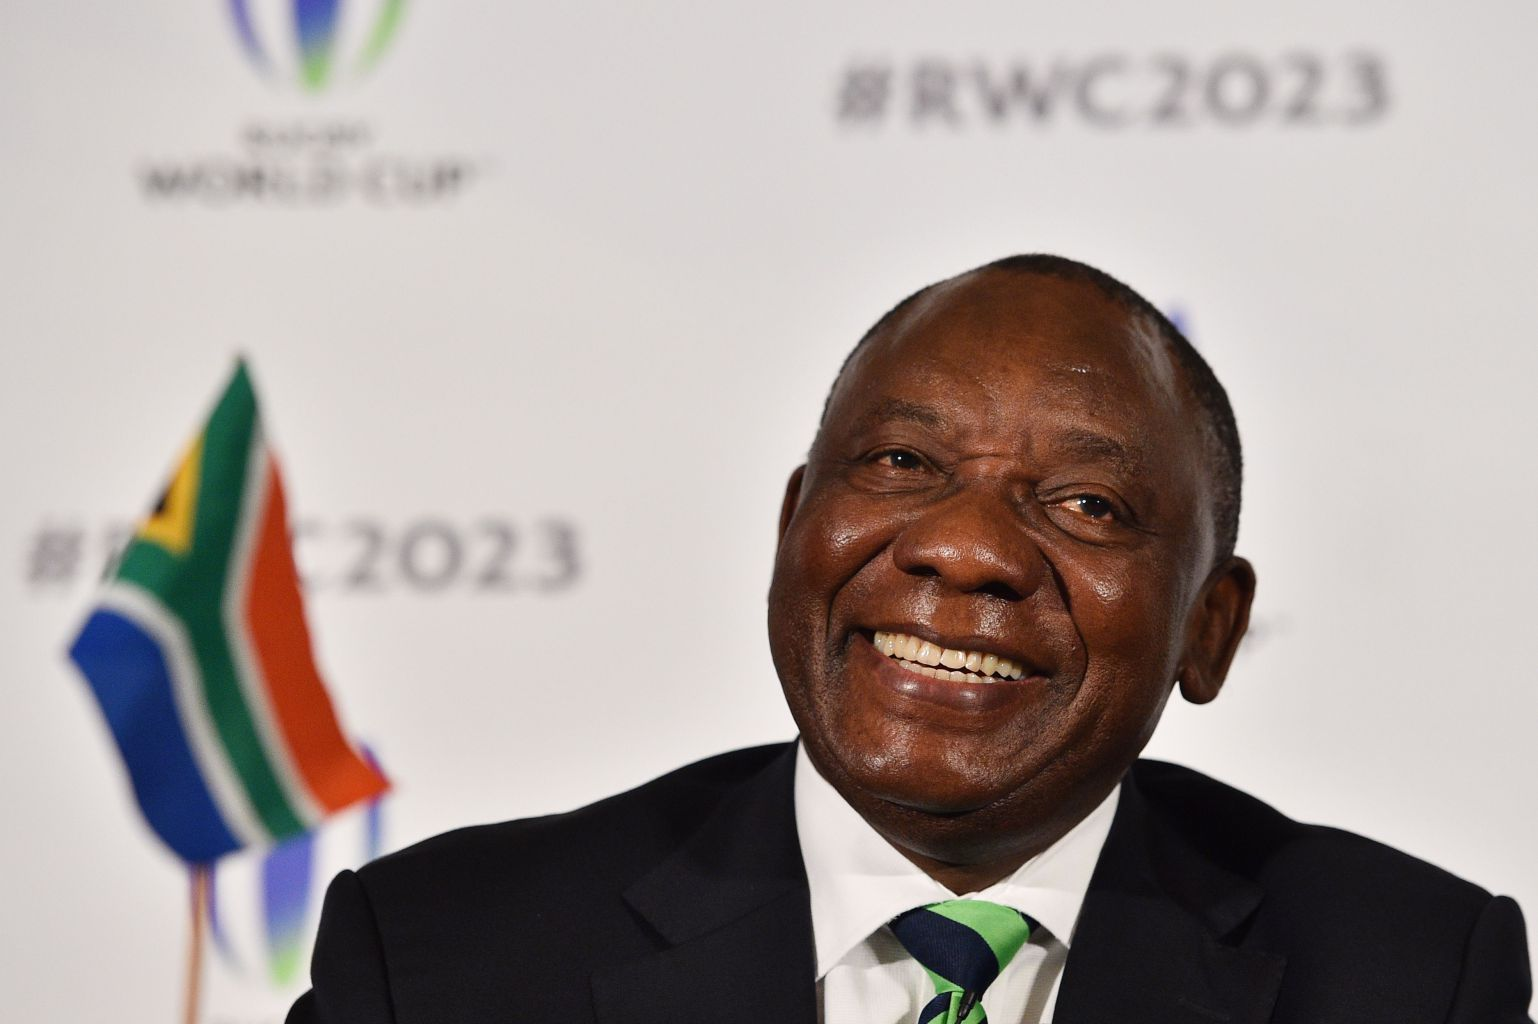 Cyril Ramaphosa Steps in as South Africa's President After Zuma Resigns - Newslibre